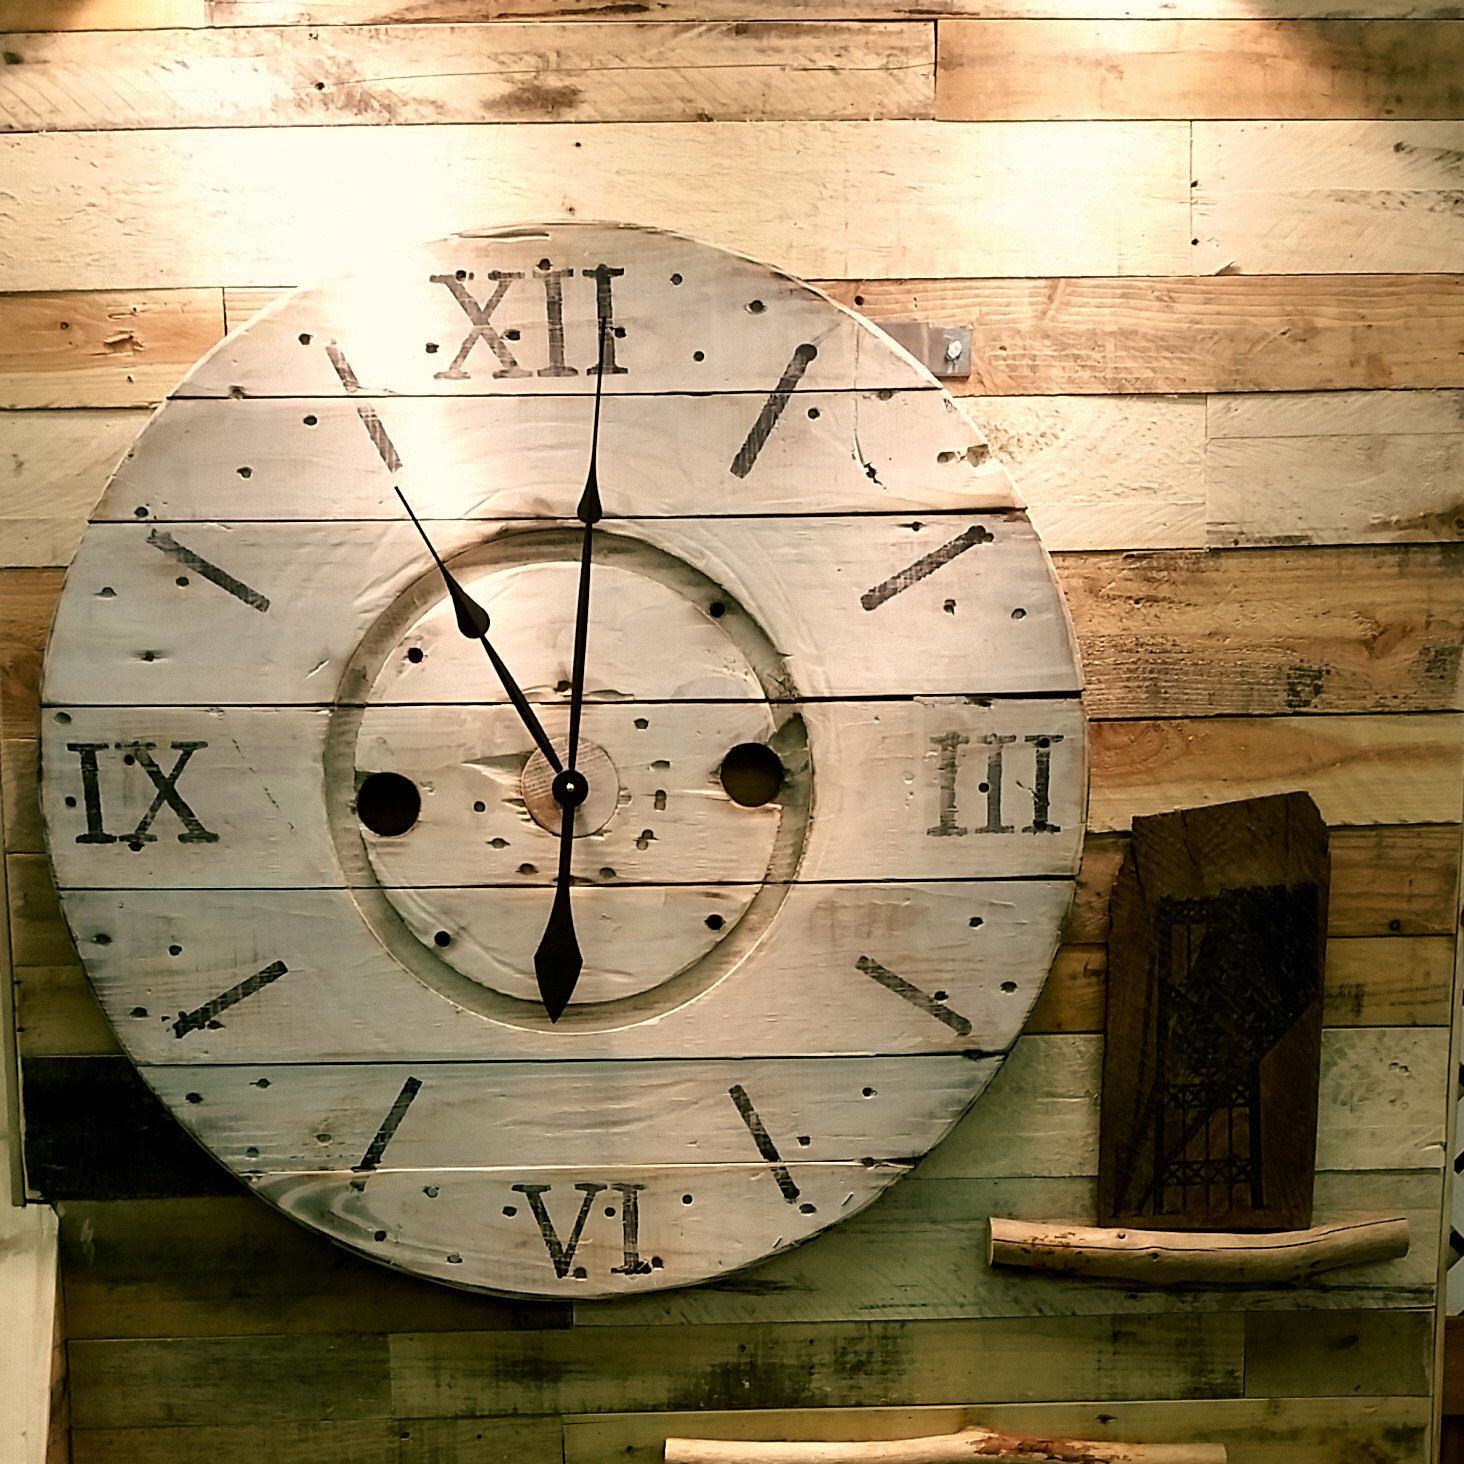 Cool Clock Hands Pin By Melodee May On Cable Spools In 2019 Wire Spool